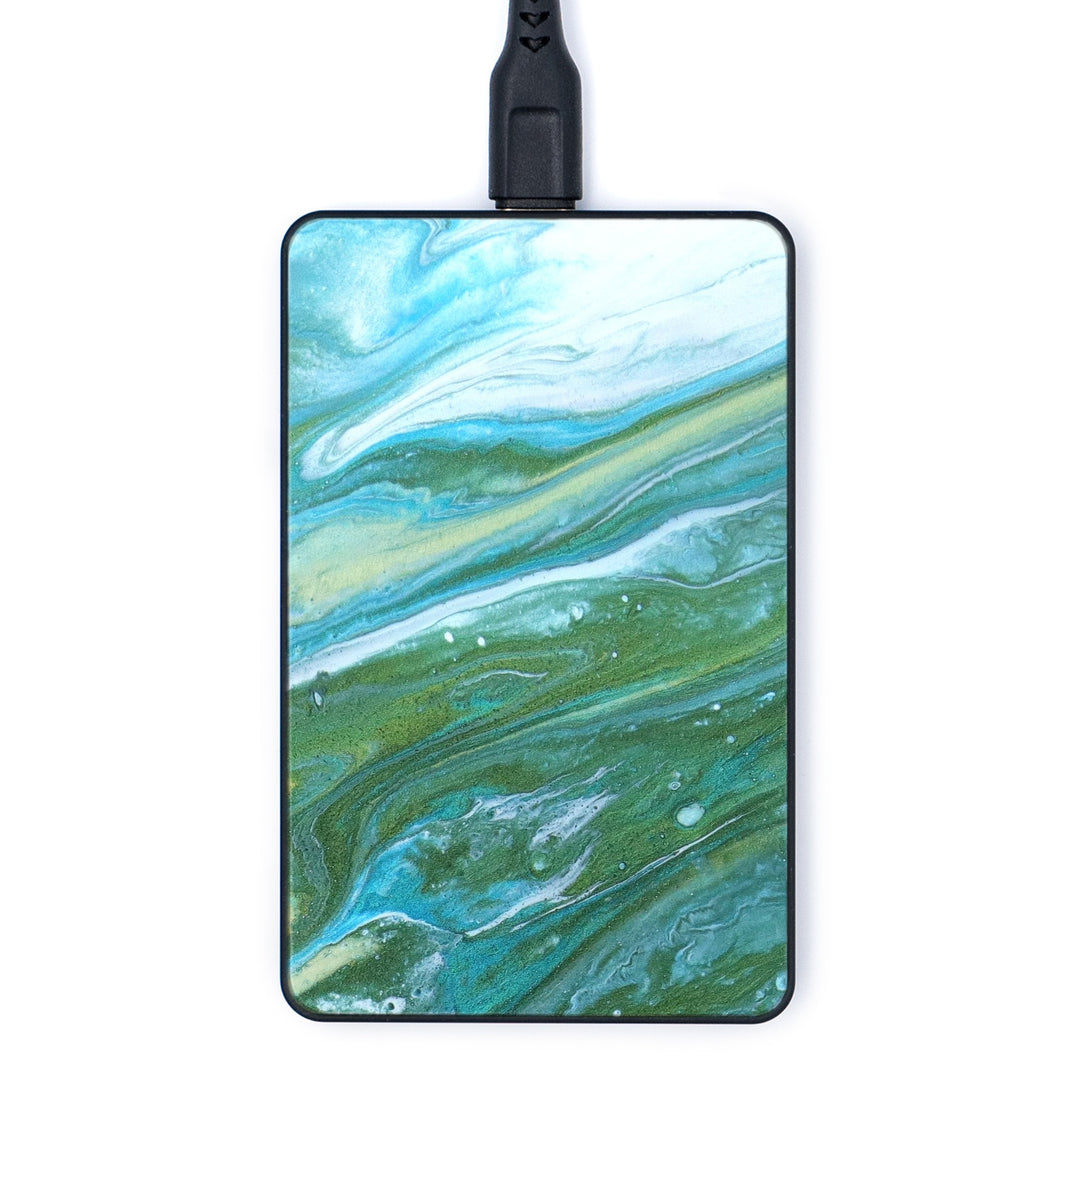 Thin Wireless Charger - Maidxpm (Teal & Gold, 346061)